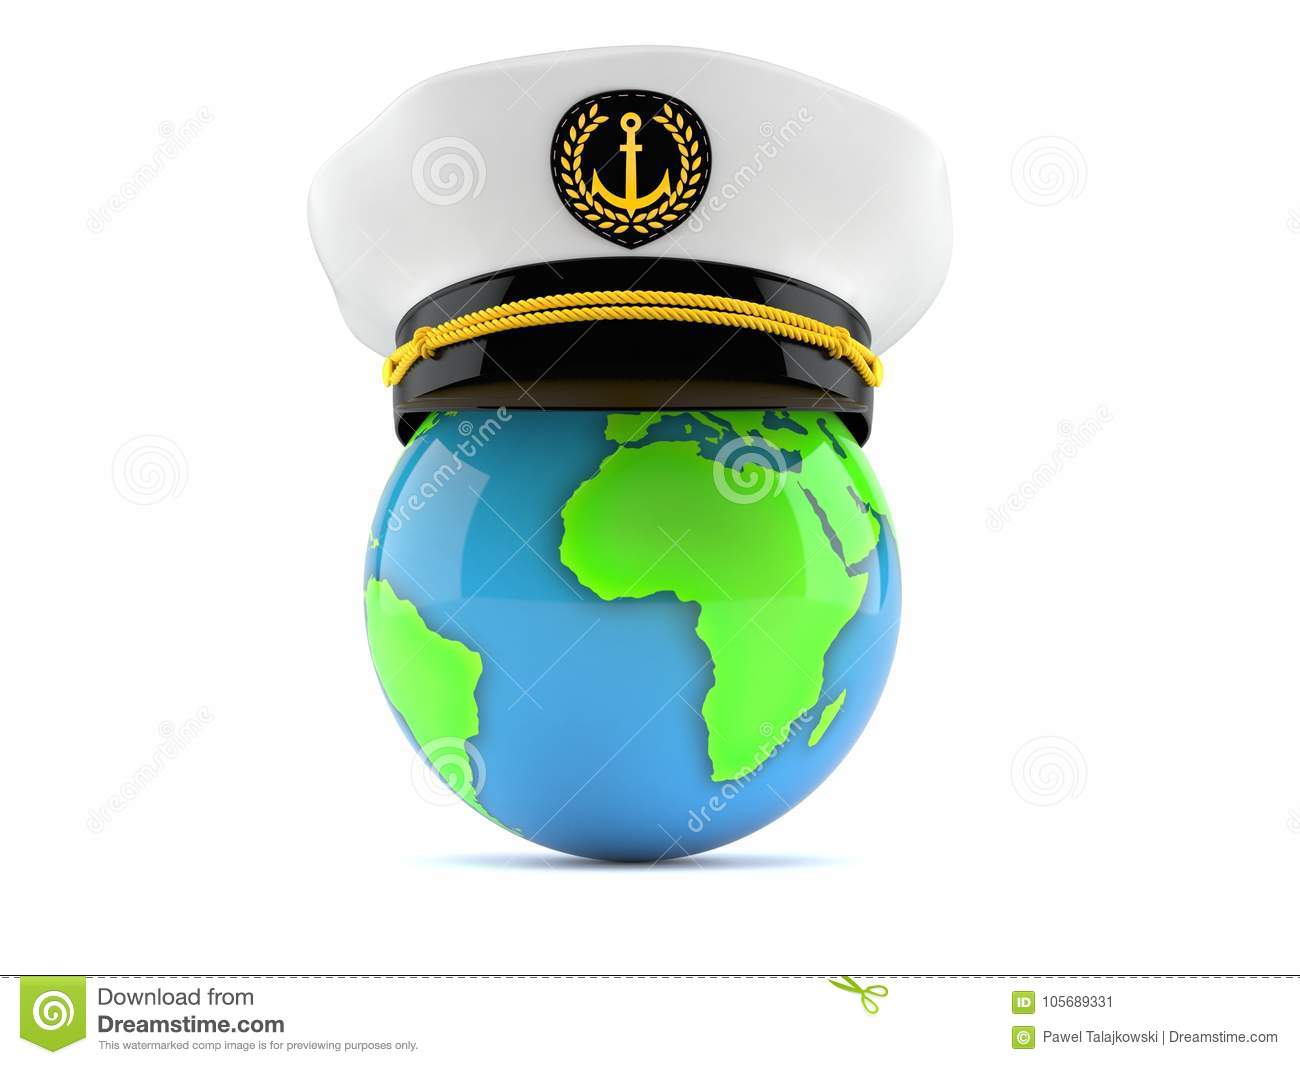 646f271150c Captains hat with globe stock illustration. Illustration of planet ...